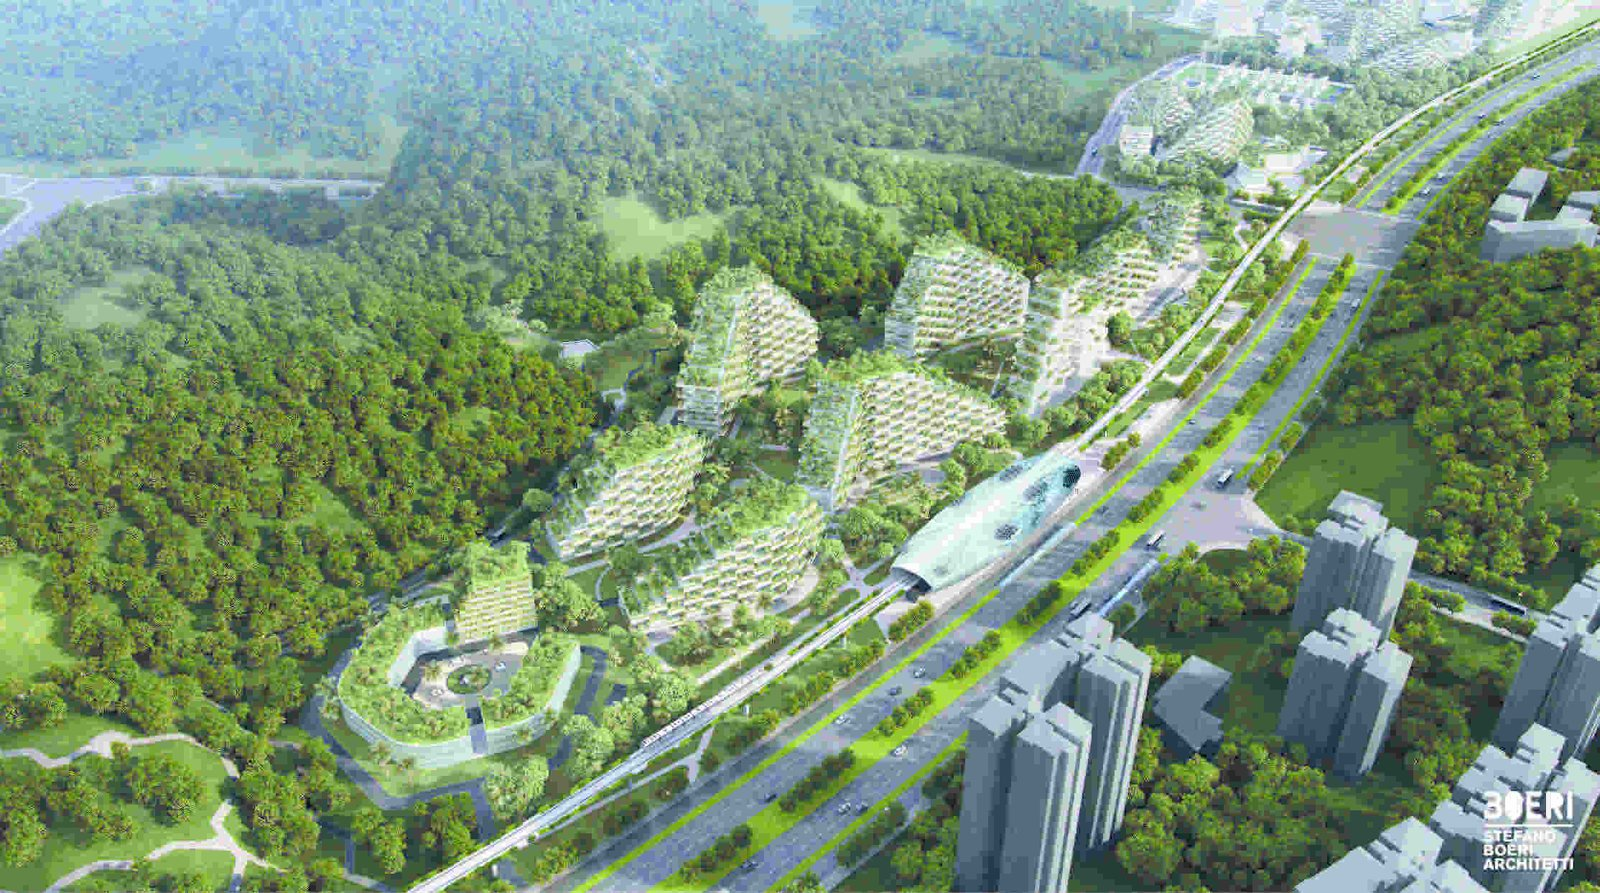 Photo 2 of 6 in A Green City in China That Will Play a Major Role in Fighting Air Pollution